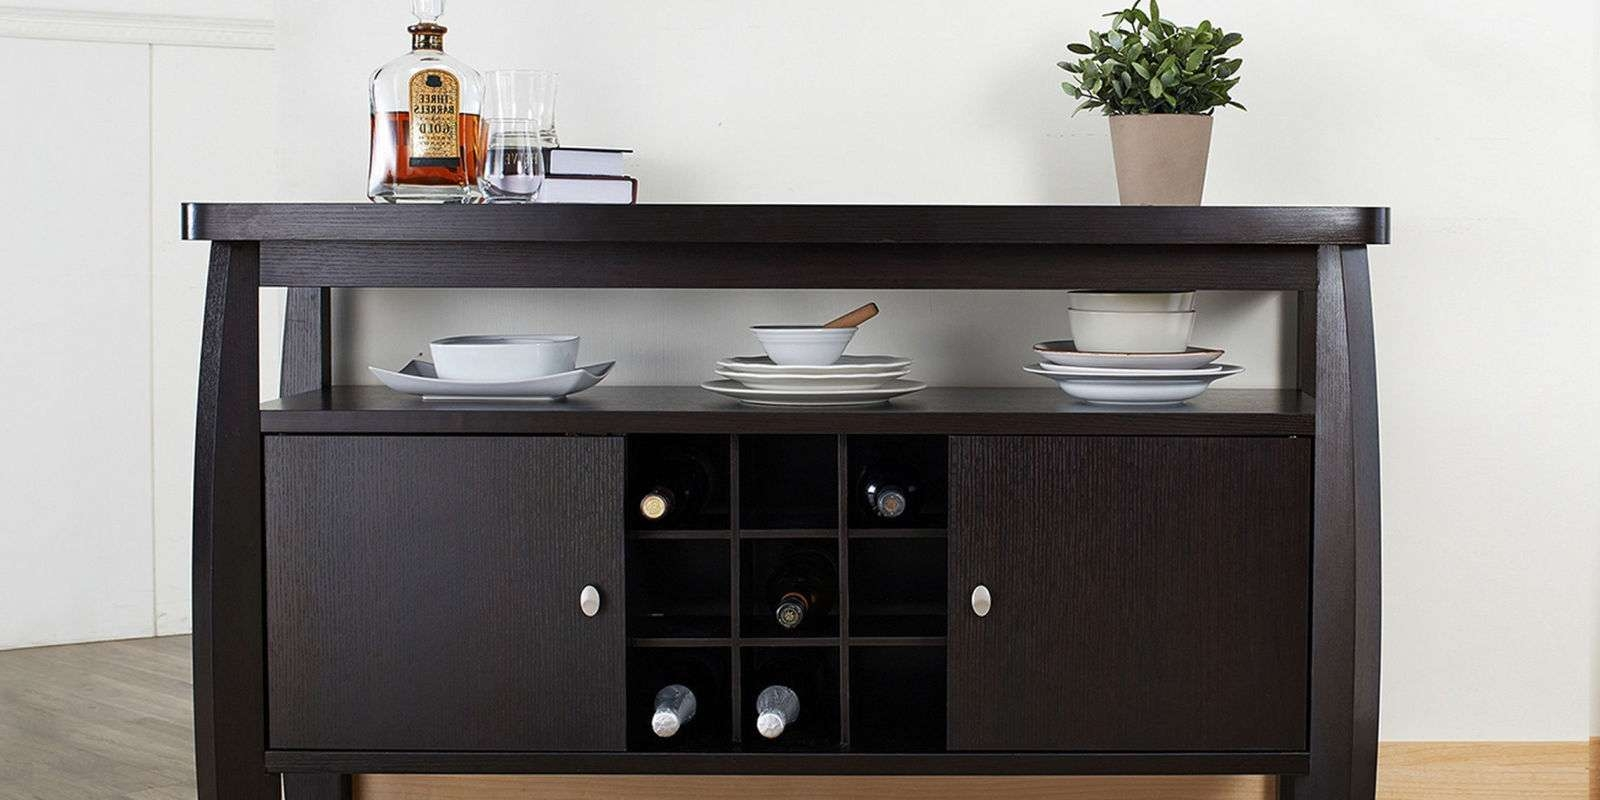 11 Best Sideboards And Buffets In 2018 – Reviews Of Sideboards Throughout Sideboards Tables (Gallery 4 of 20)